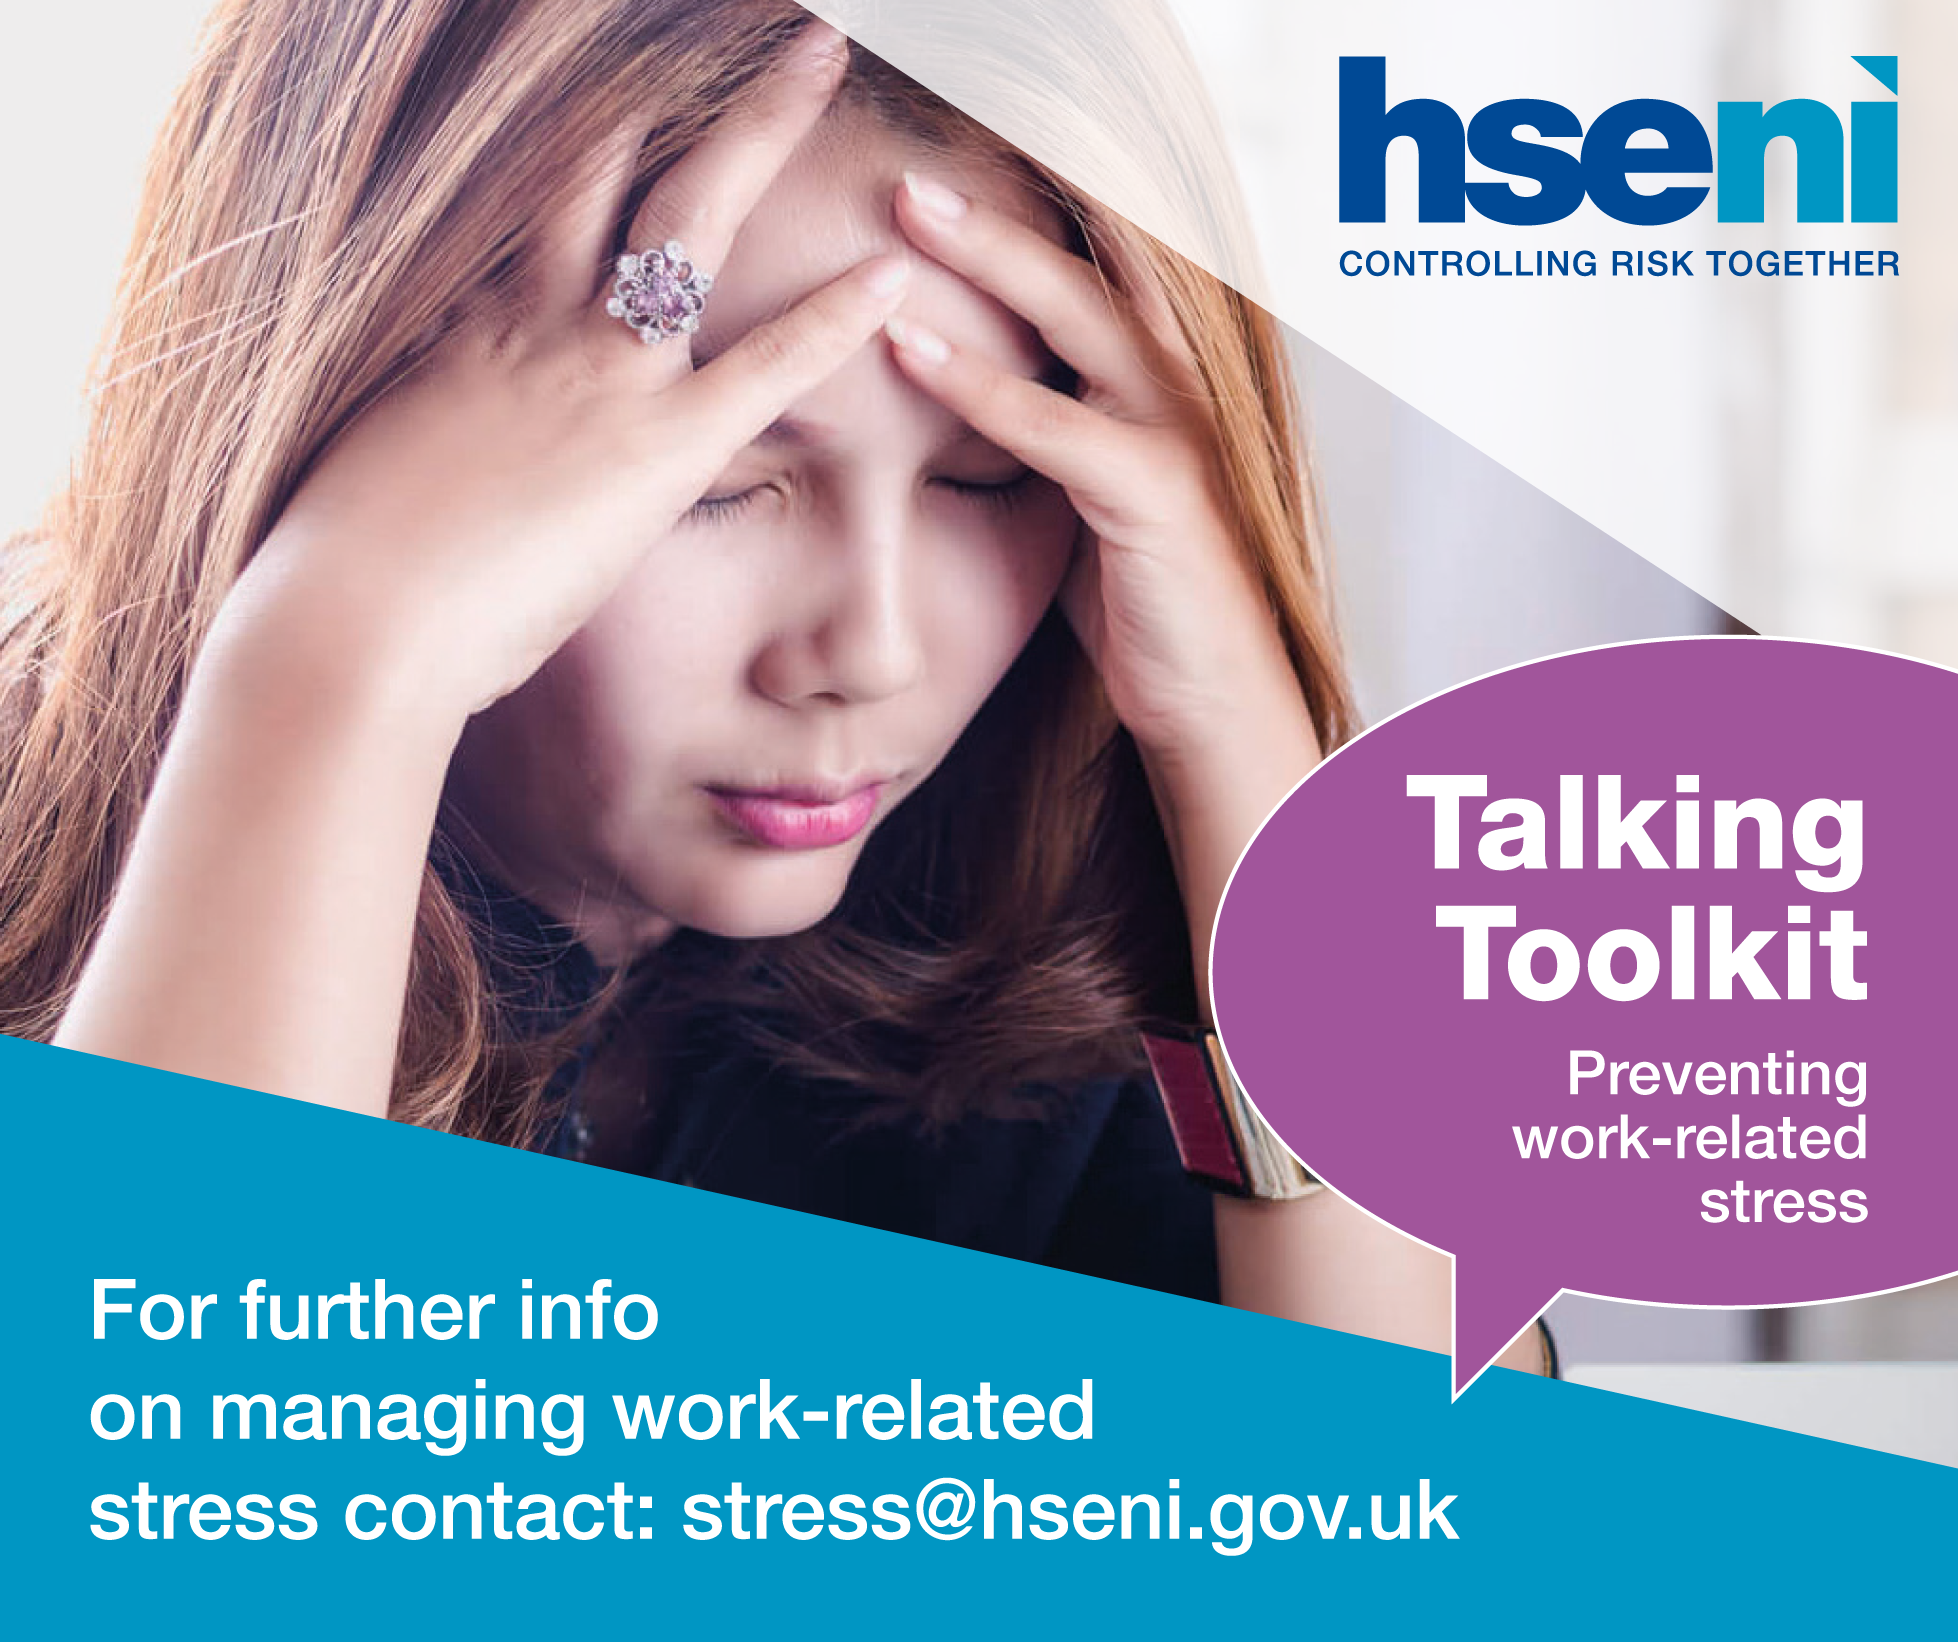 Image of front cover of the Talking Toolkit booklet